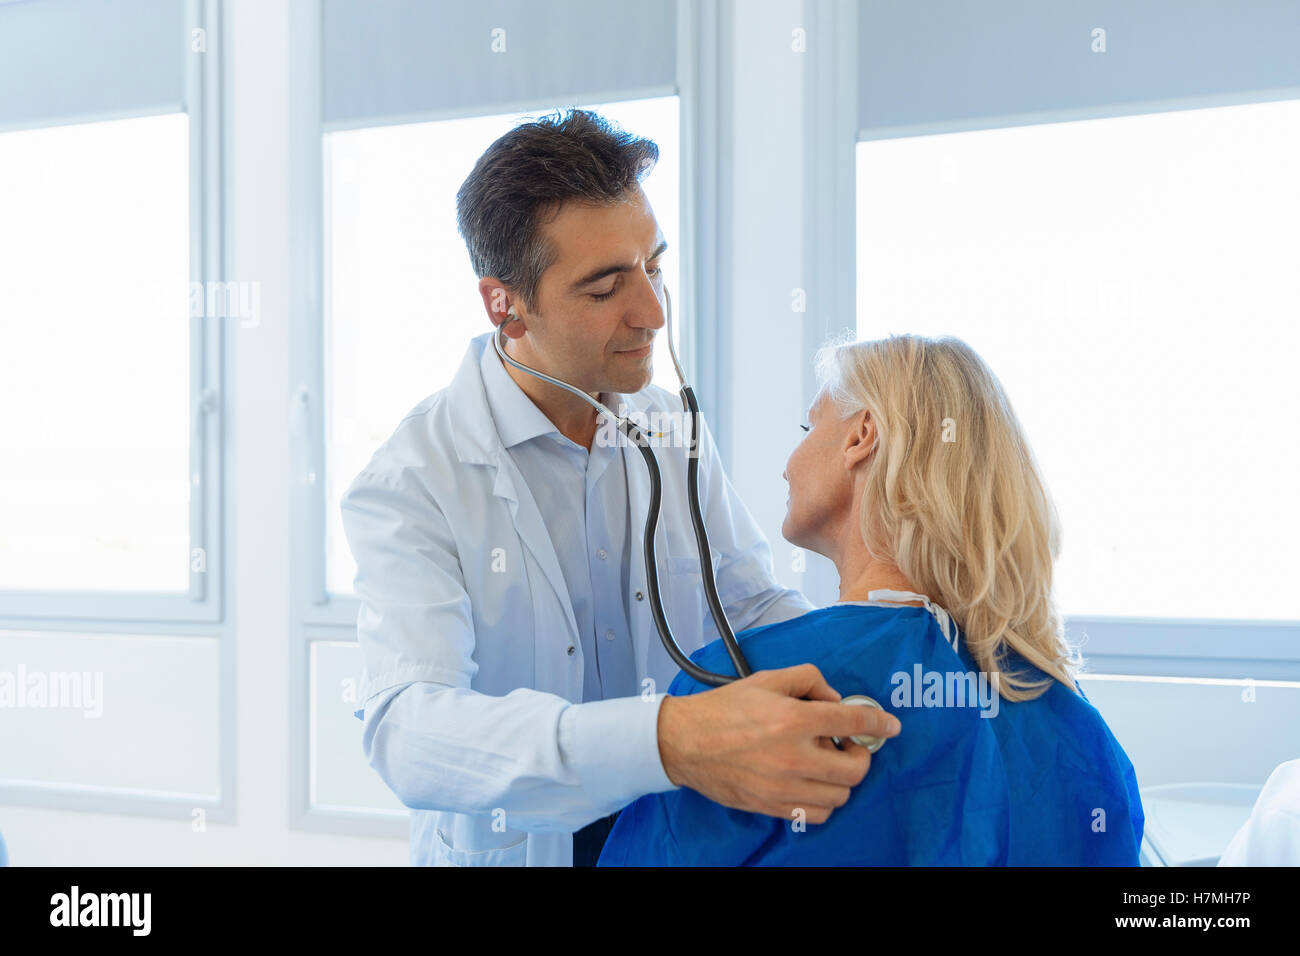 Doctor examining senior patient in hospital Photo Stock